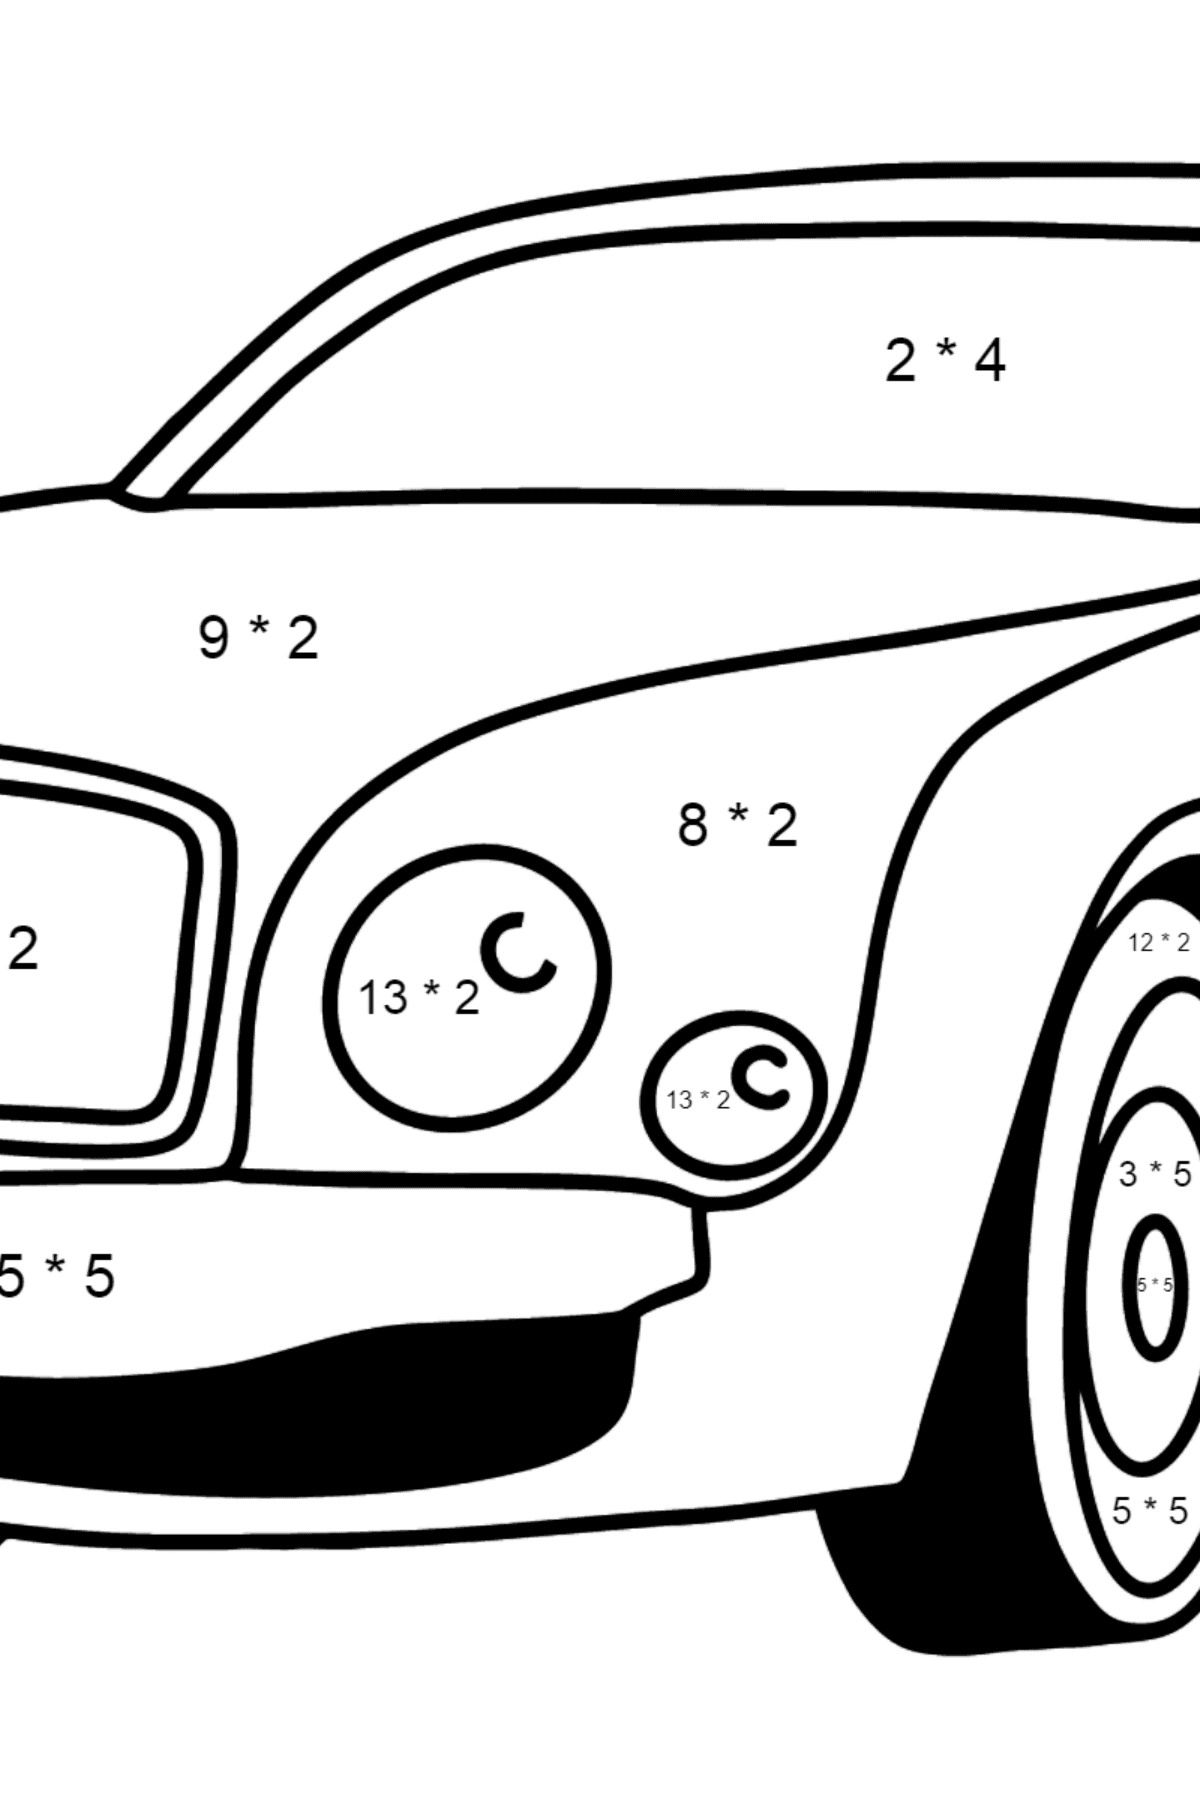 Bentley Mulsanne Car Coloring Page - Math Coloring - Multiplication for Kids